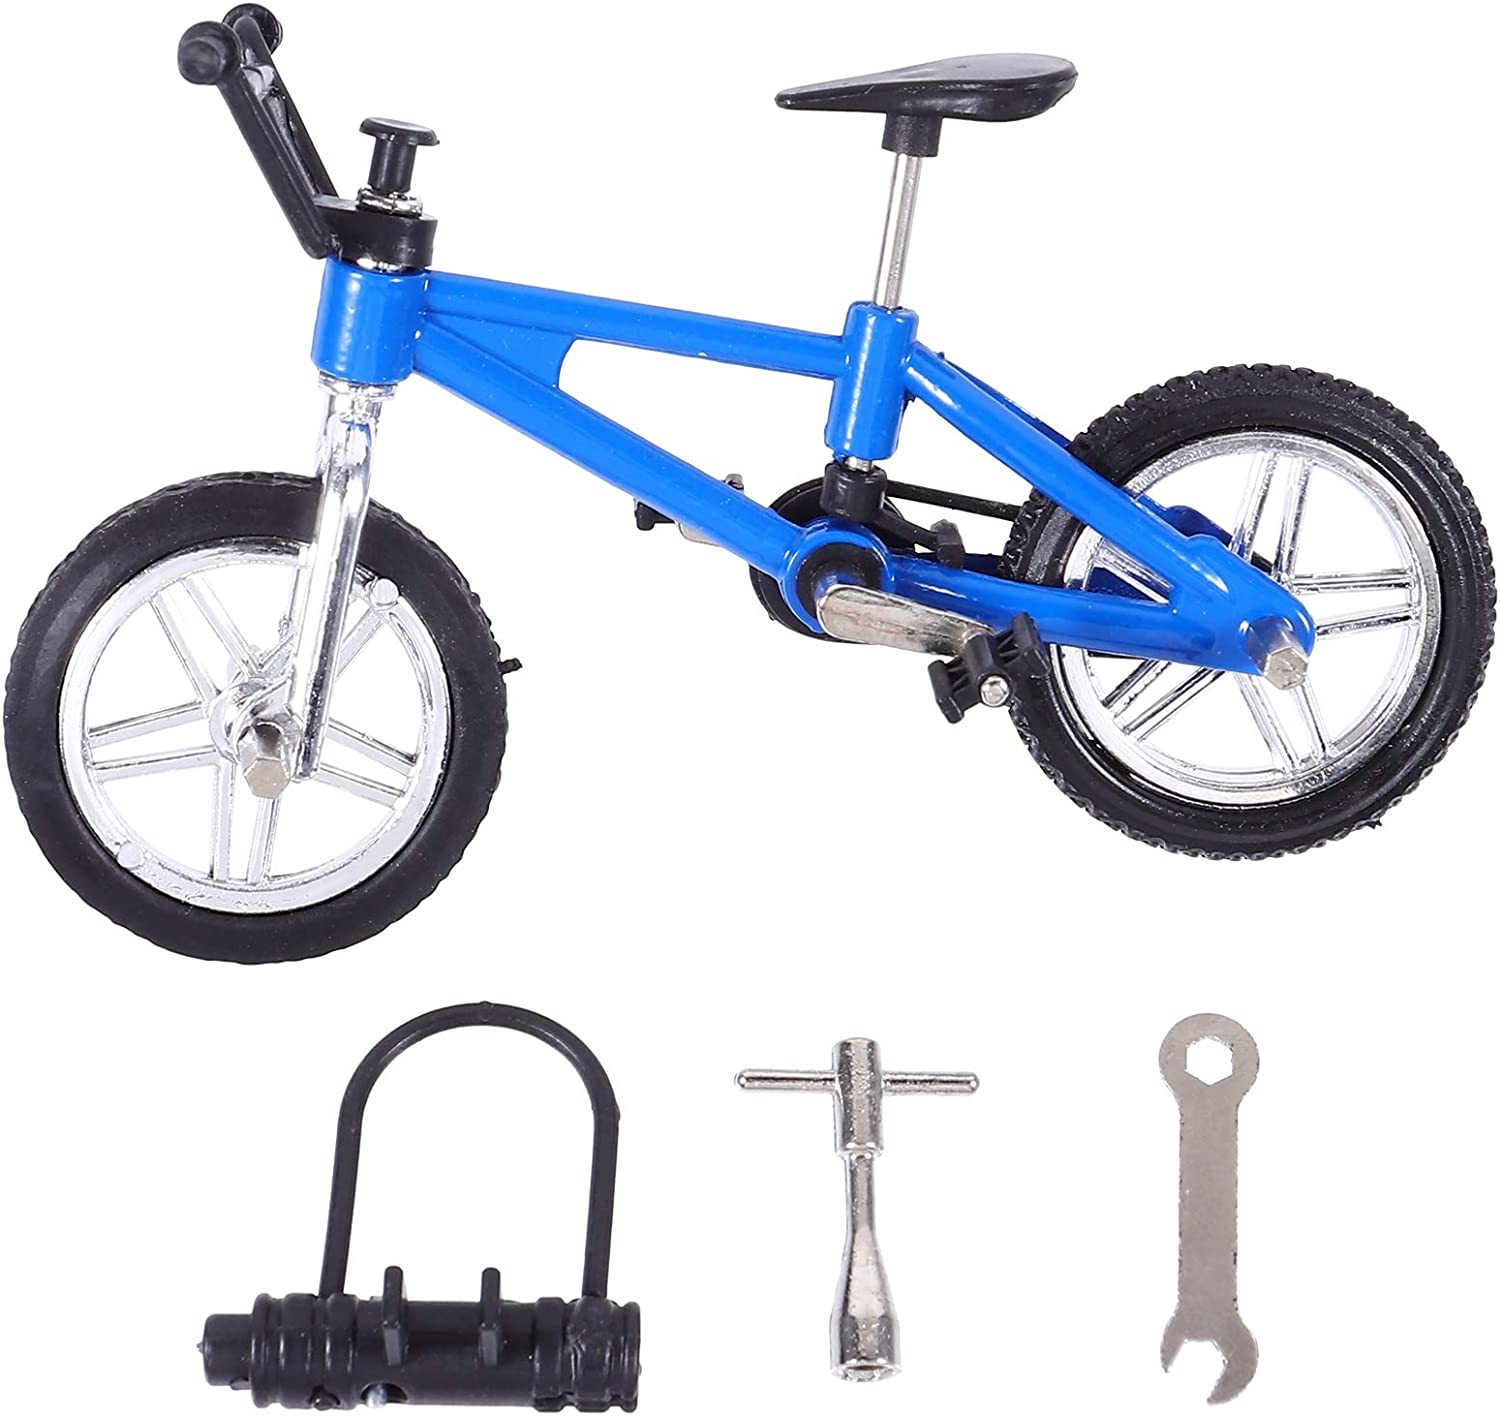 Luxury Abaodam Mini Mountain Bike Alloy Childre Toy Finger Fixed price for sale Kids Bicycle